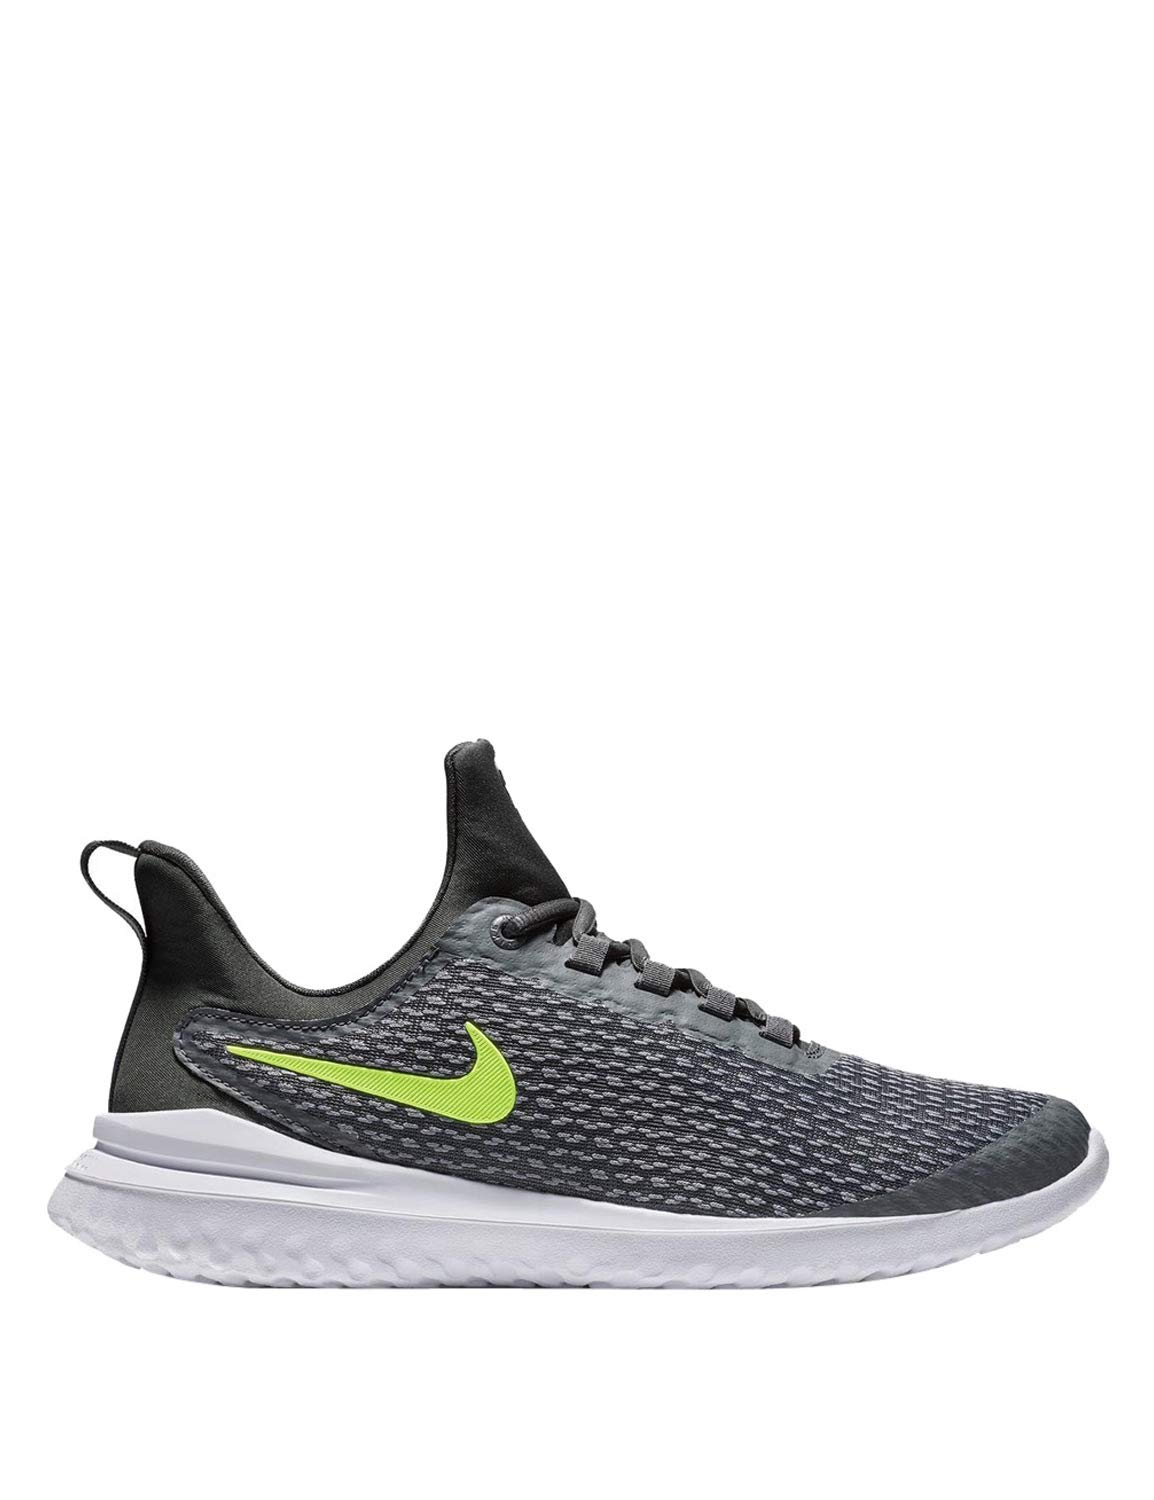 62b9e04e5bb Galleon - NIKE Mens Renew Rival Dark Grey Volt Anthracite Grey Size 8.5